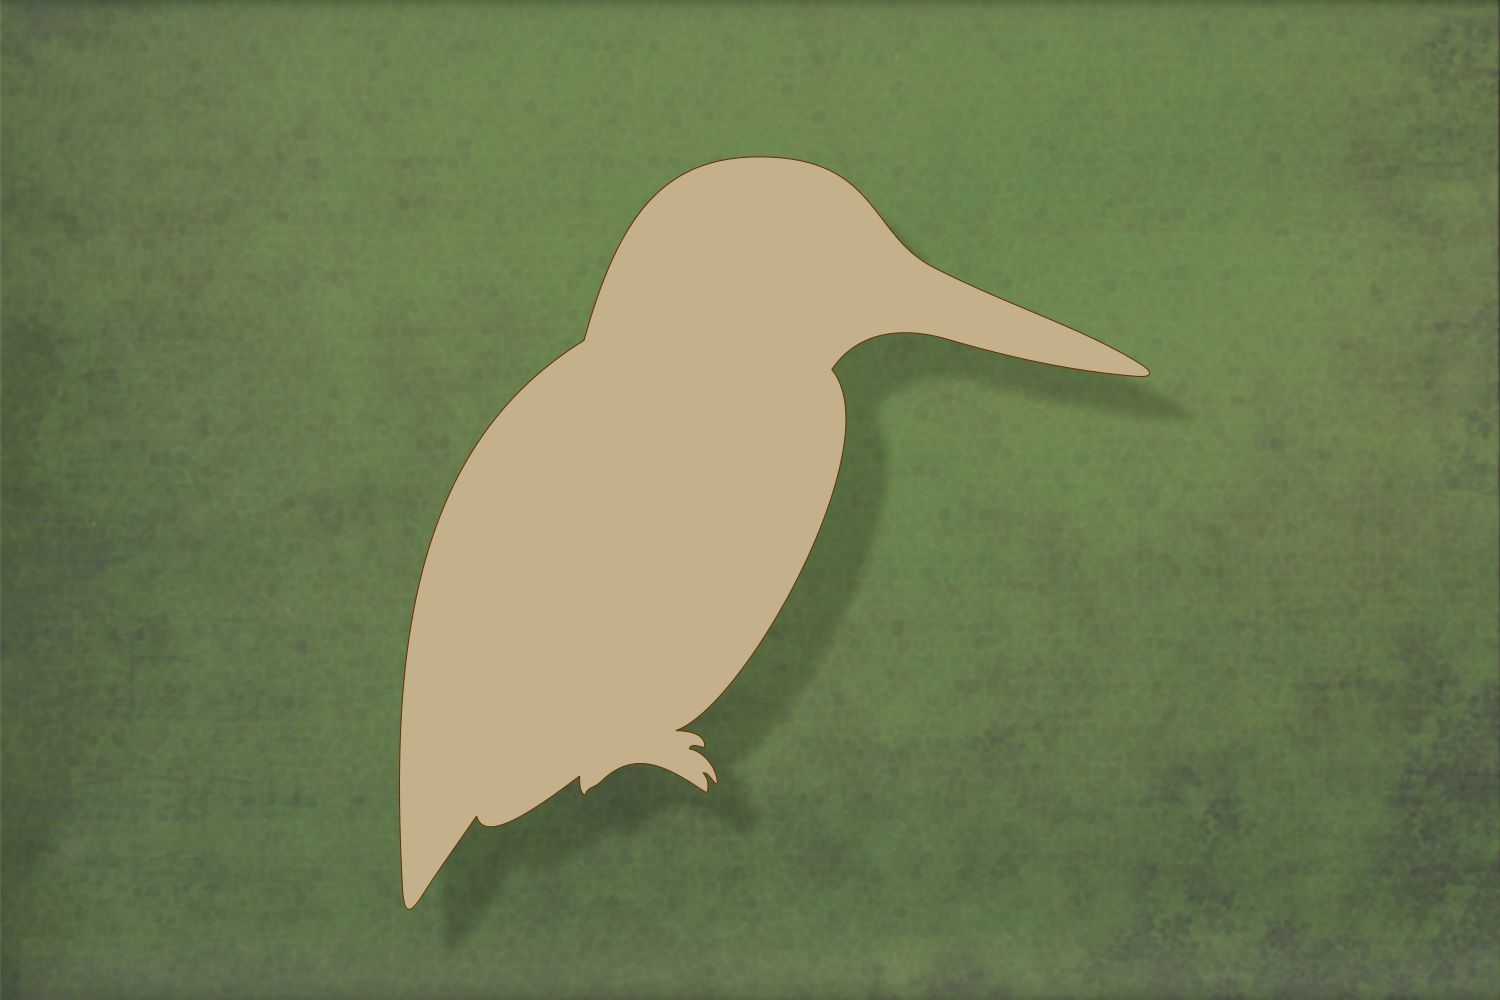 Laser cut, blank wooden Kingfisher shape for craft